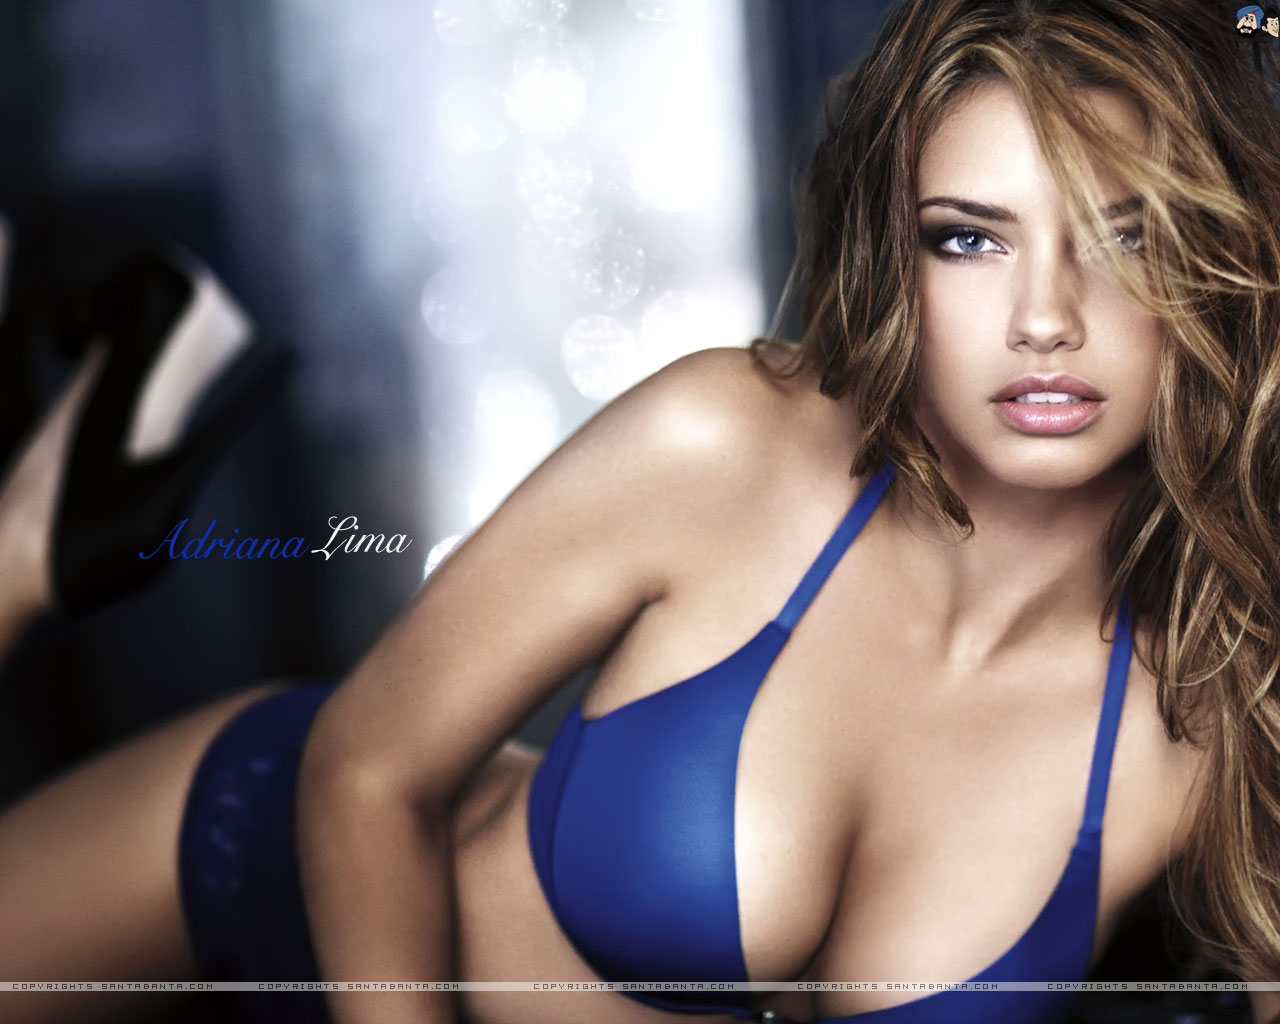 Adriana Lima Images Adriana Lima Hd Wallpaper And